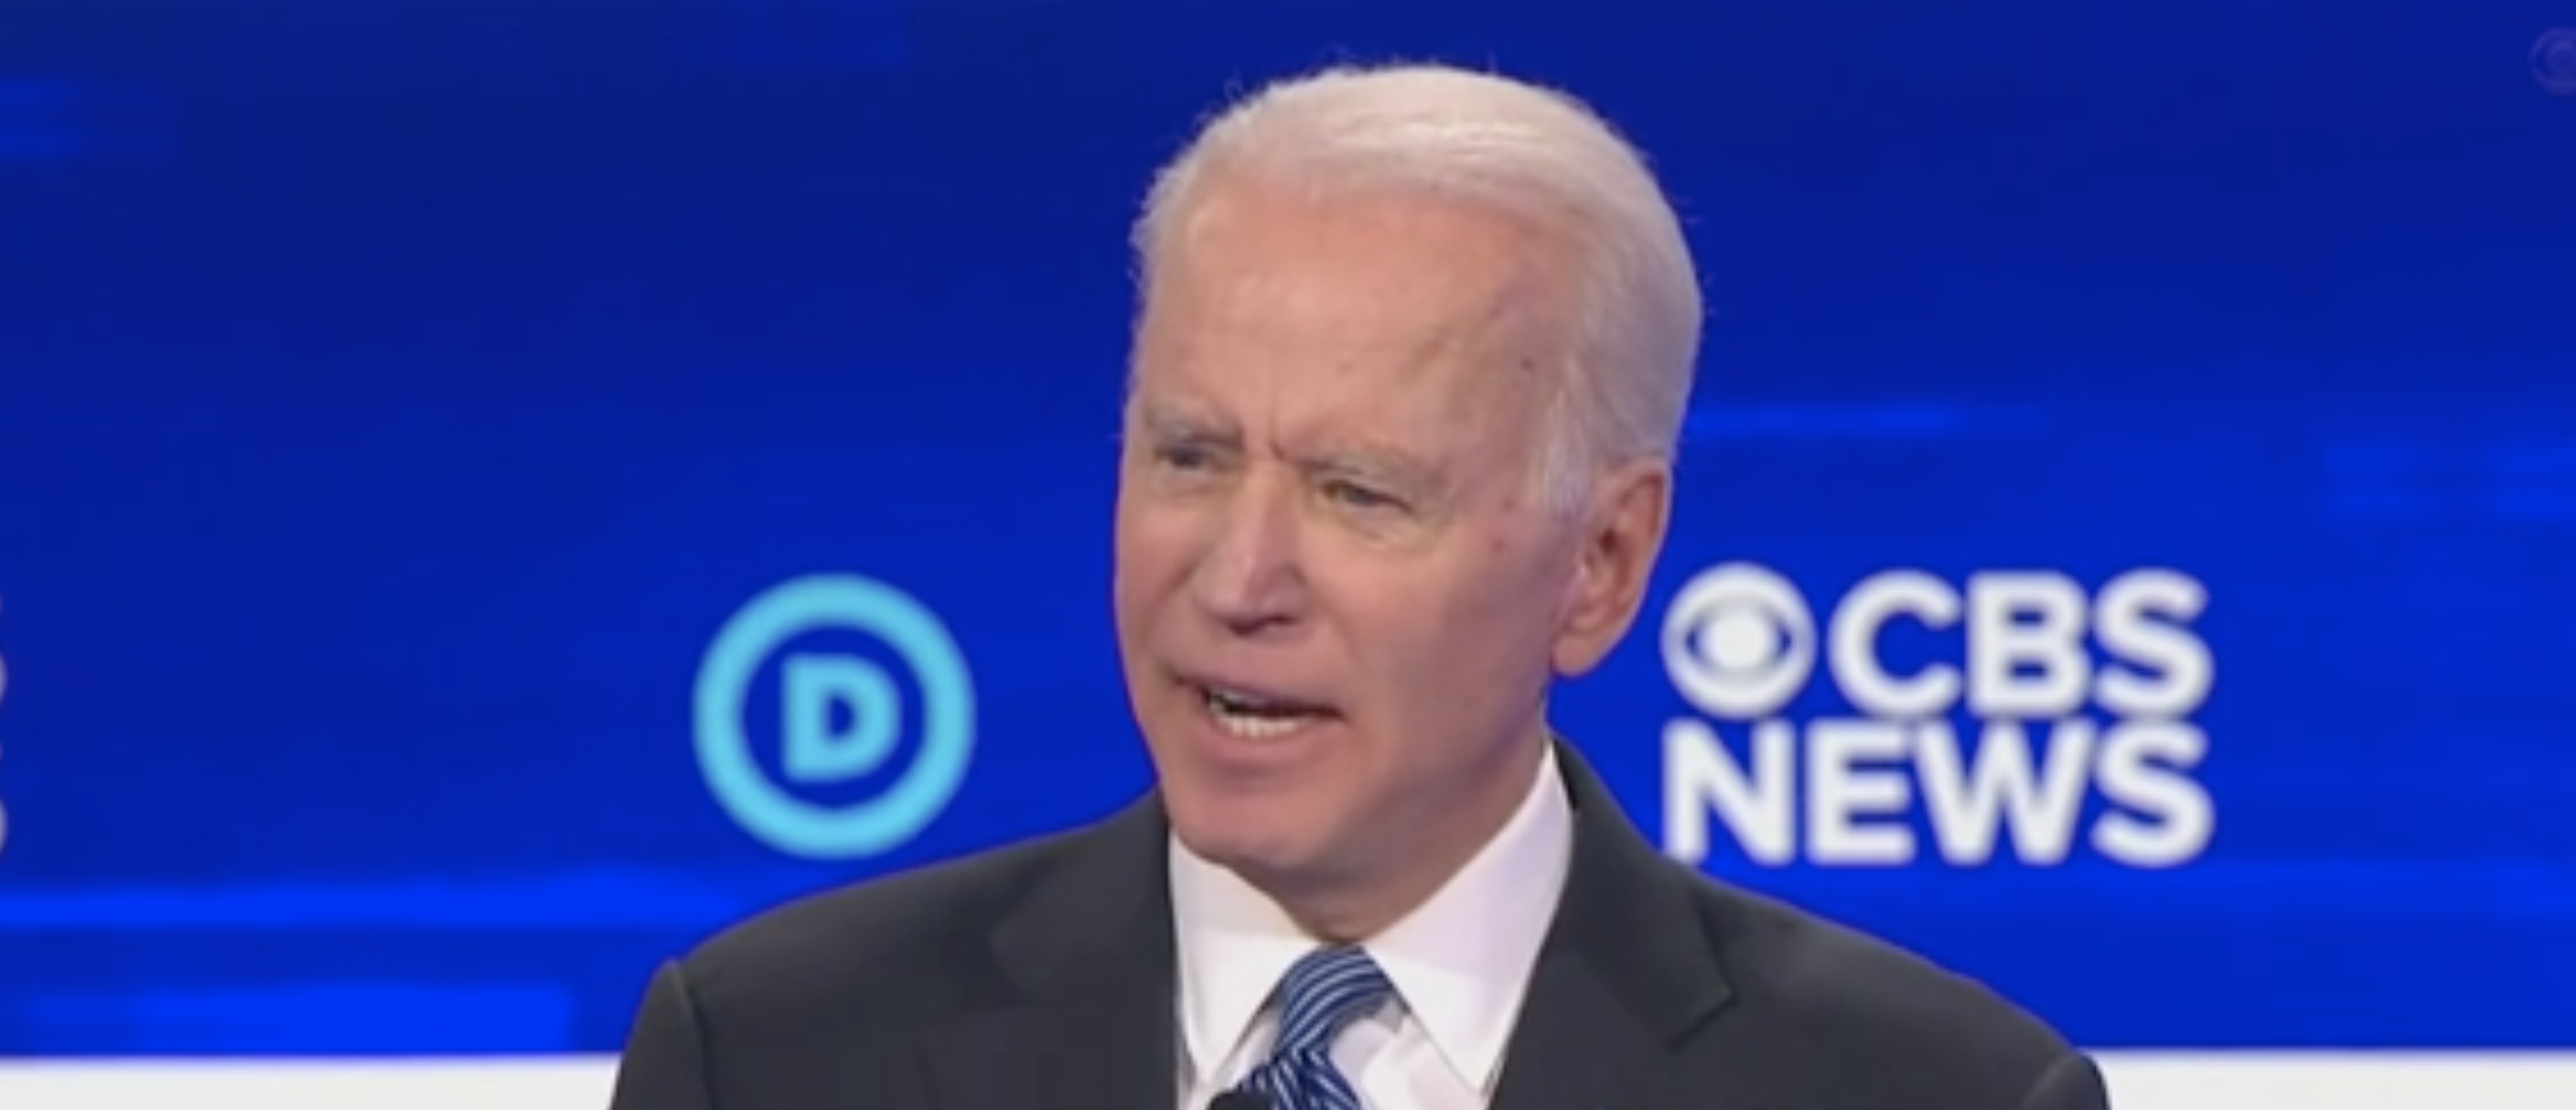 Joe Biden Claims A Whopping 150 Million People Have Been Killed By Guns Since 2007